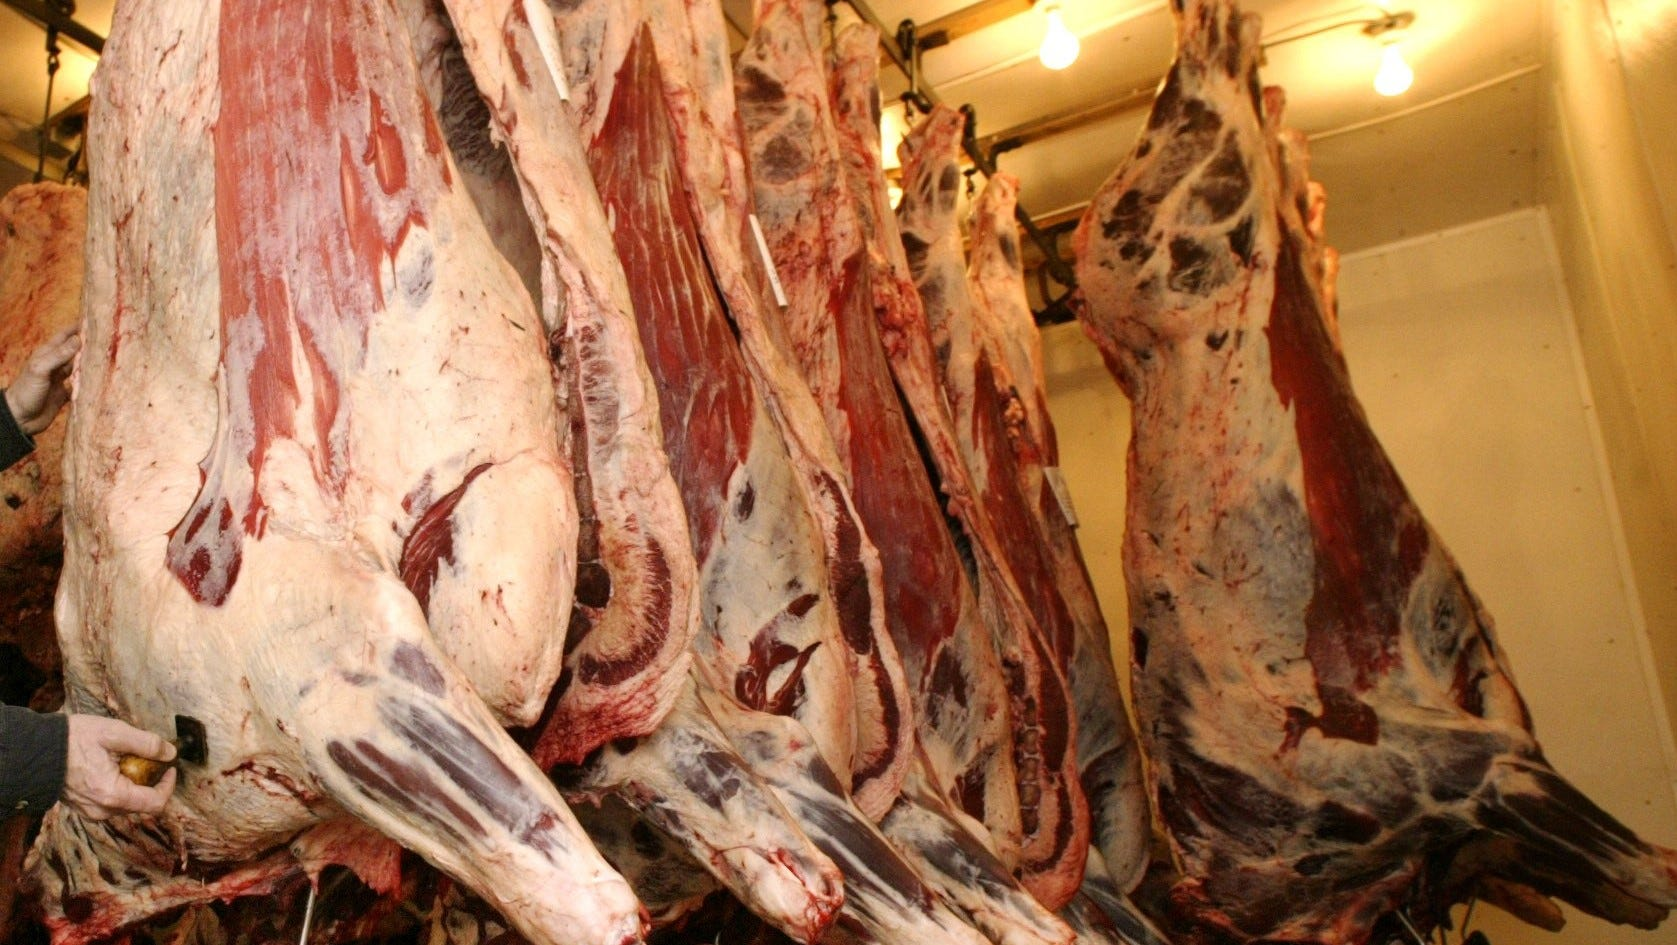 Meat hangs in the Stanhope Locker, a quality meat processing, butchering, retail meat business in Stanhope, Iowa, in this 2004 file photo.